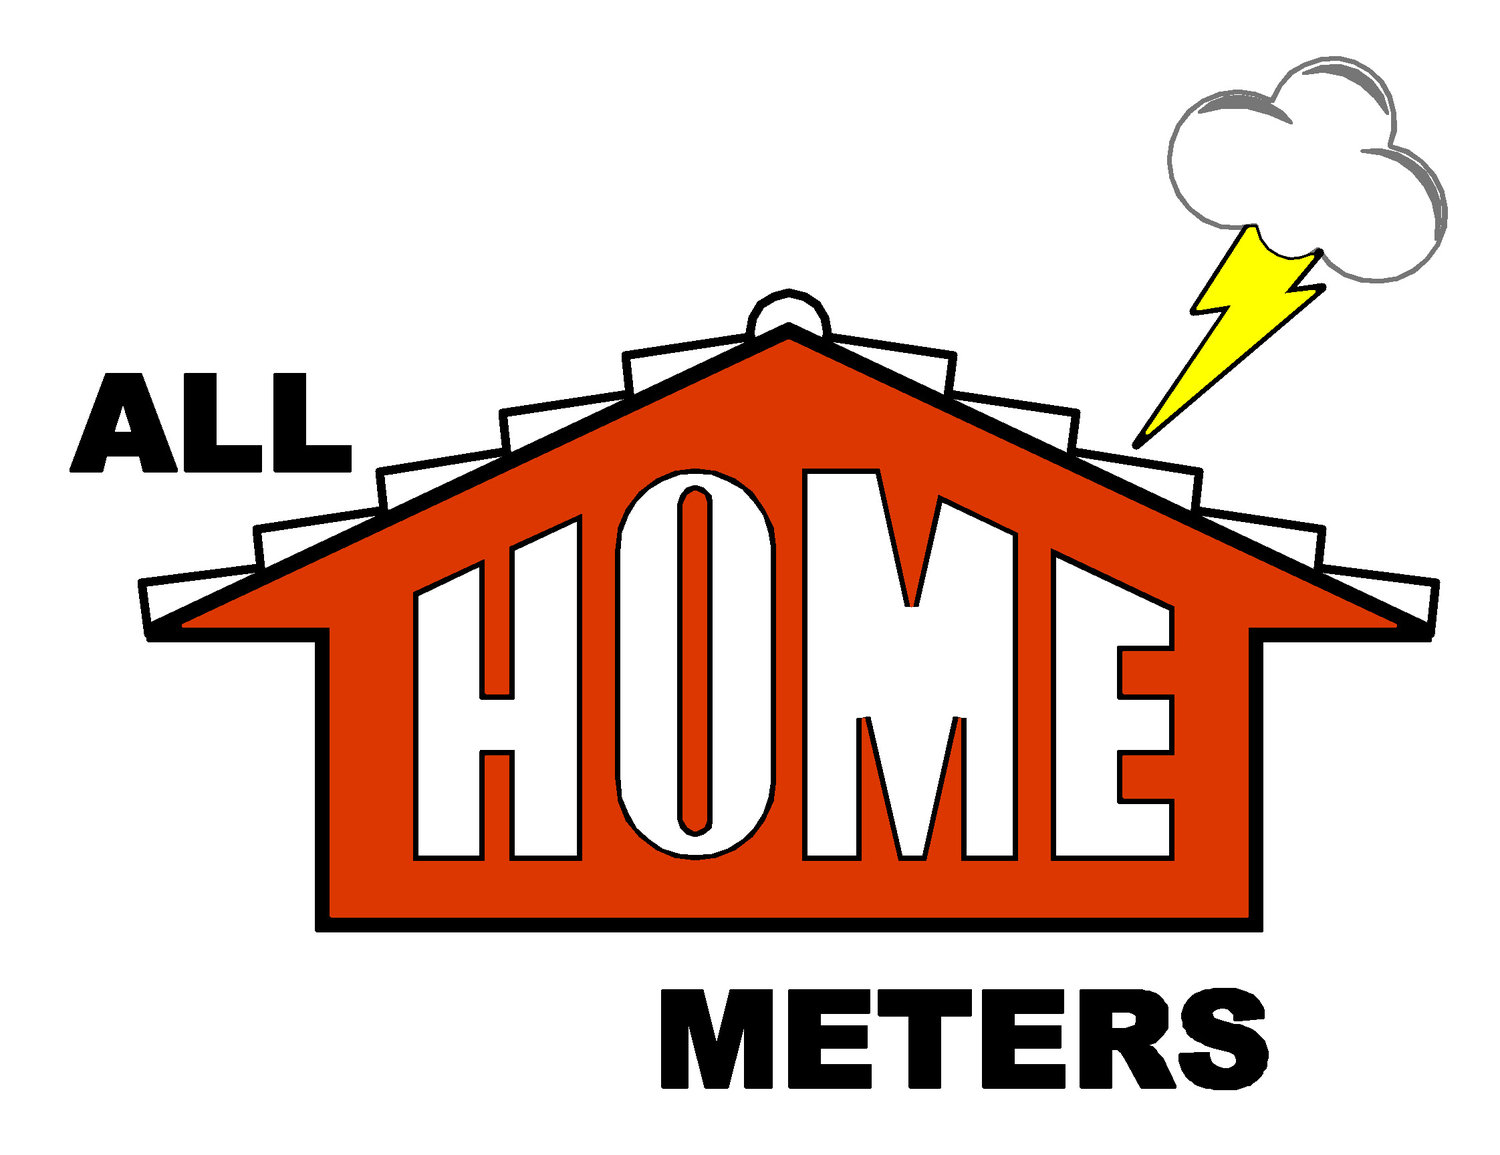 Home Inspection Miami | ALL HOME METERS